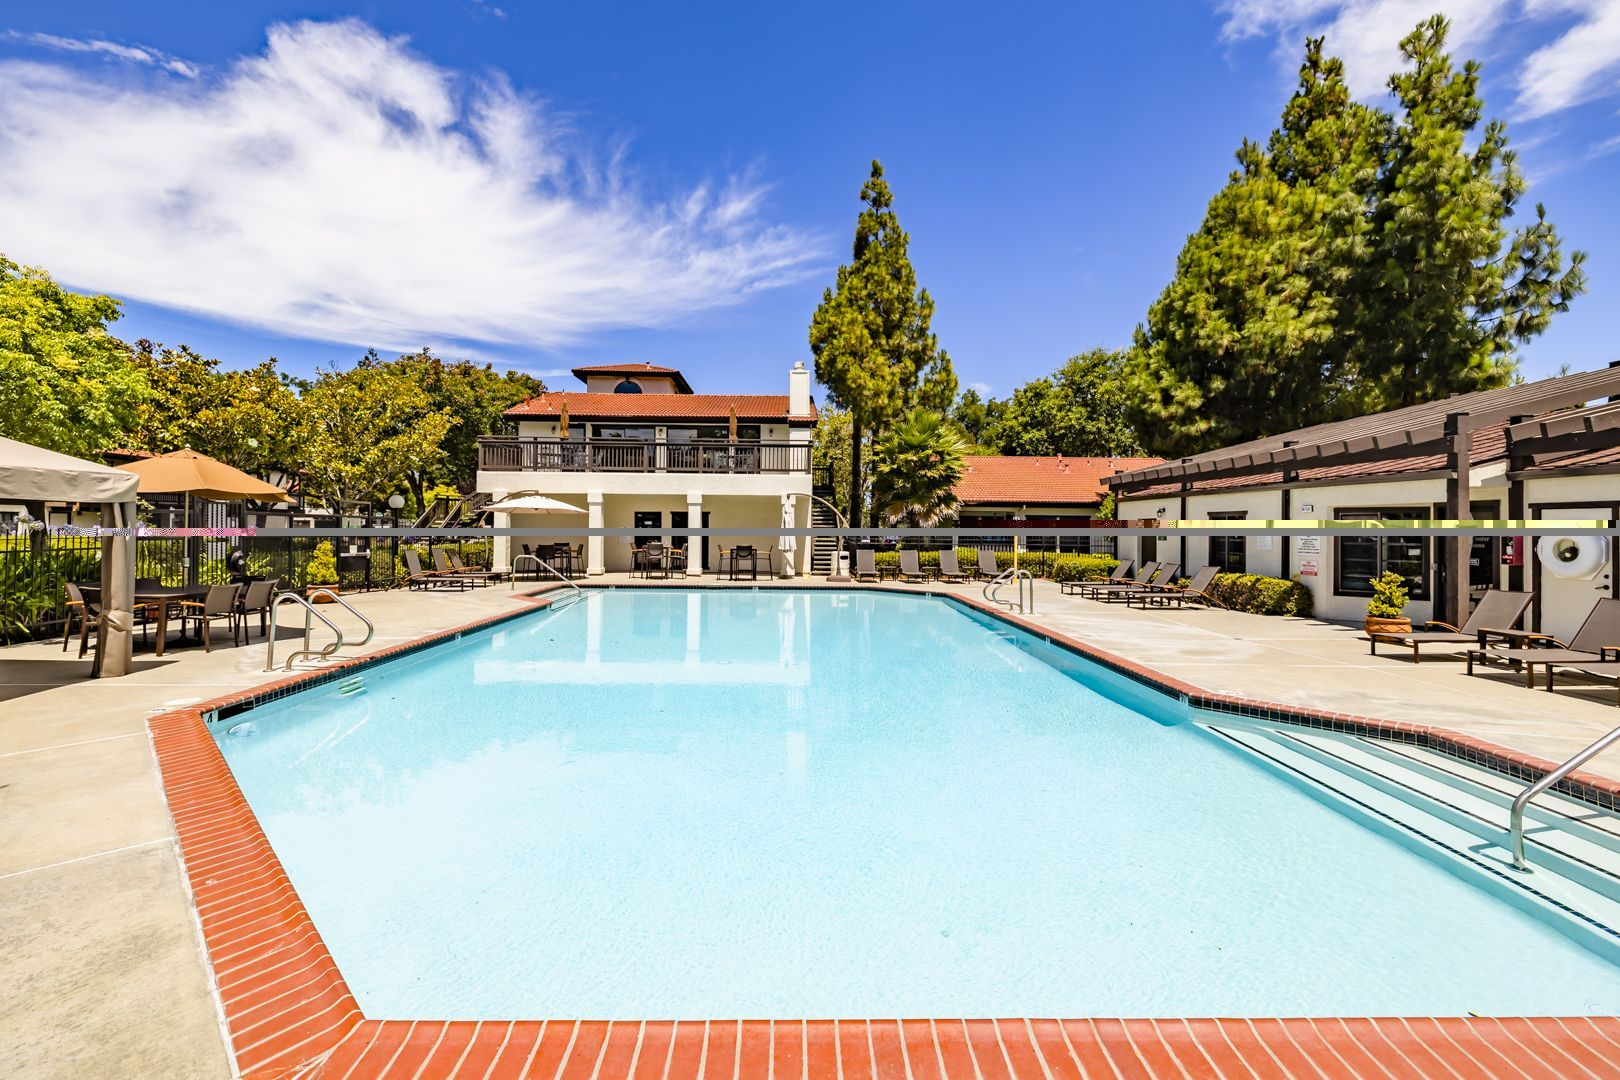 Ardenwood Forest Rental Condos for rent